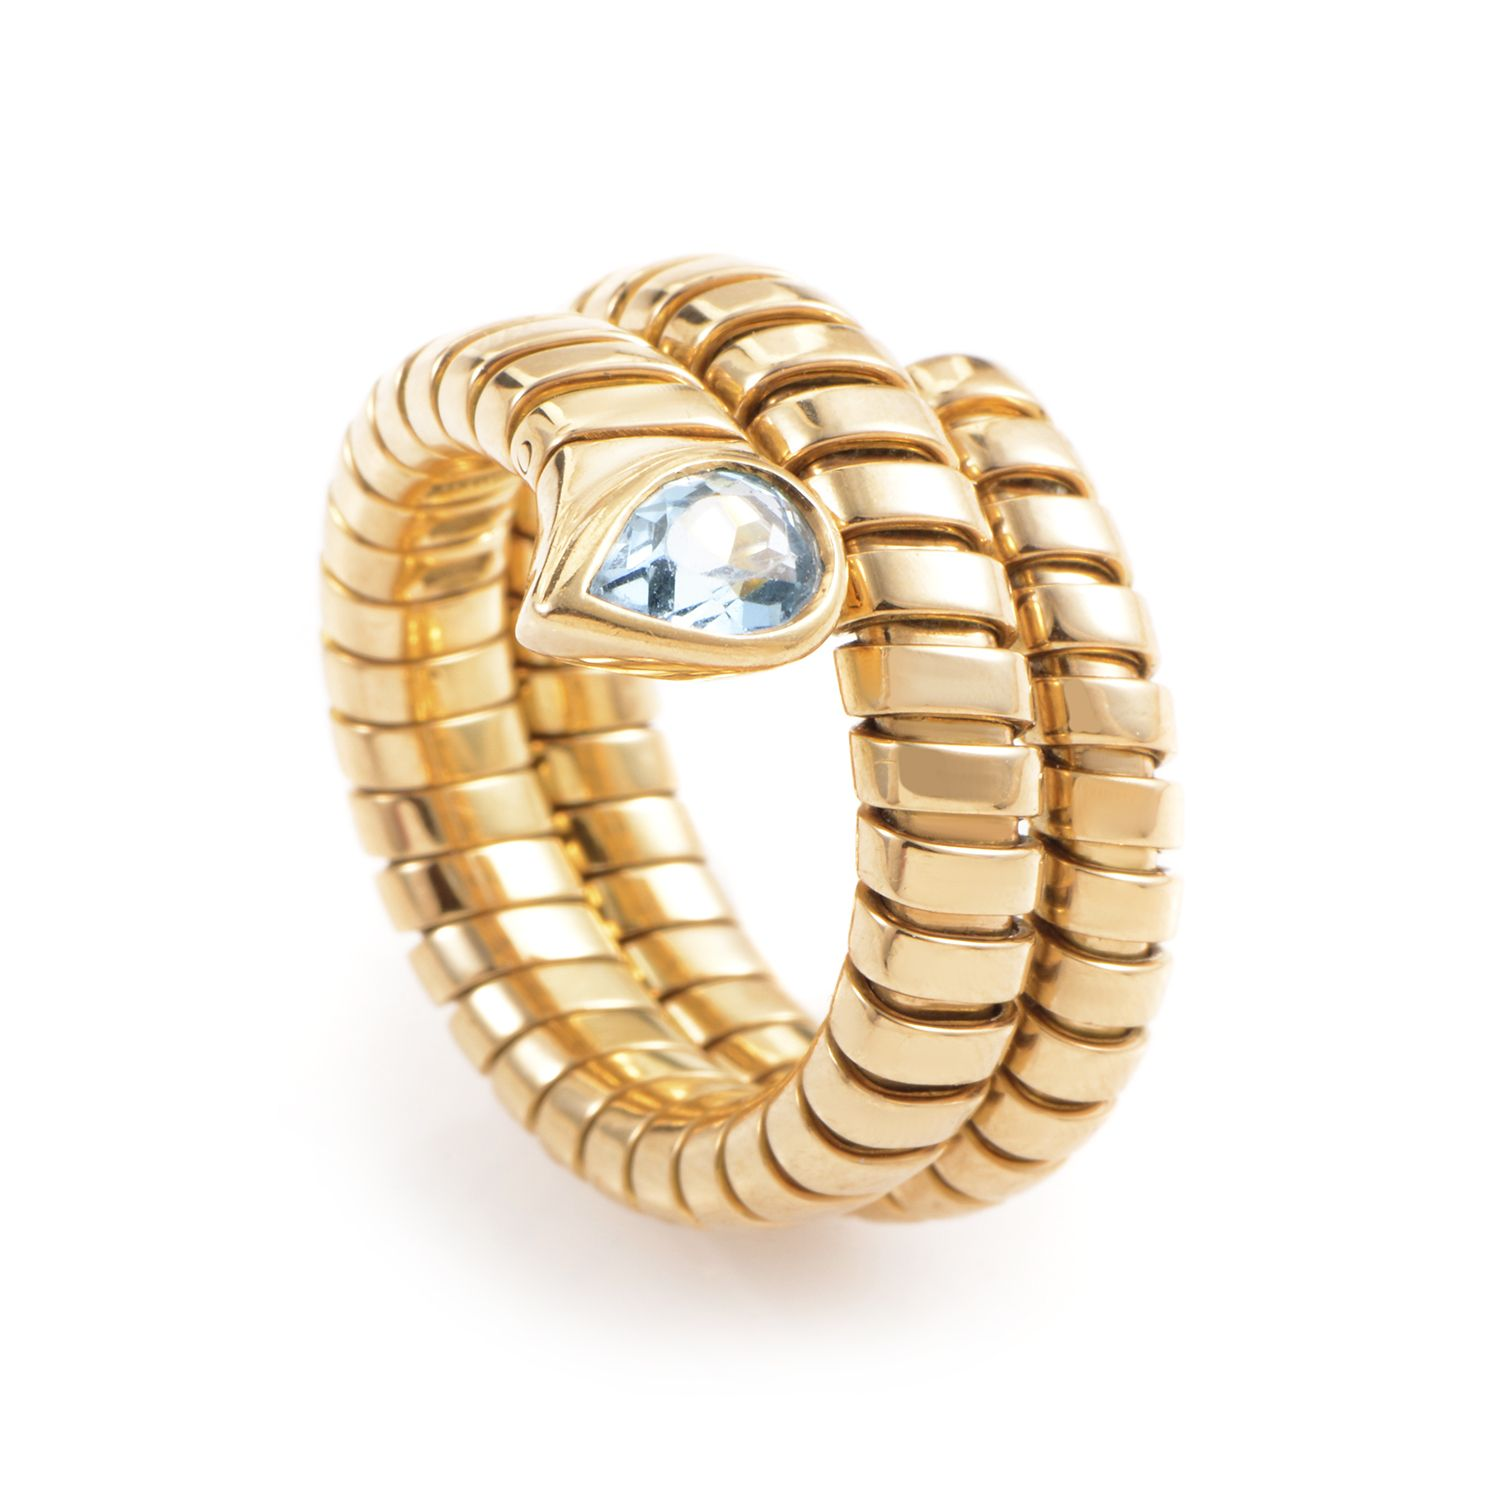 Estate Bvlgari Tubogas 18K Yellow Gold Topaz Ring Special Price 230000